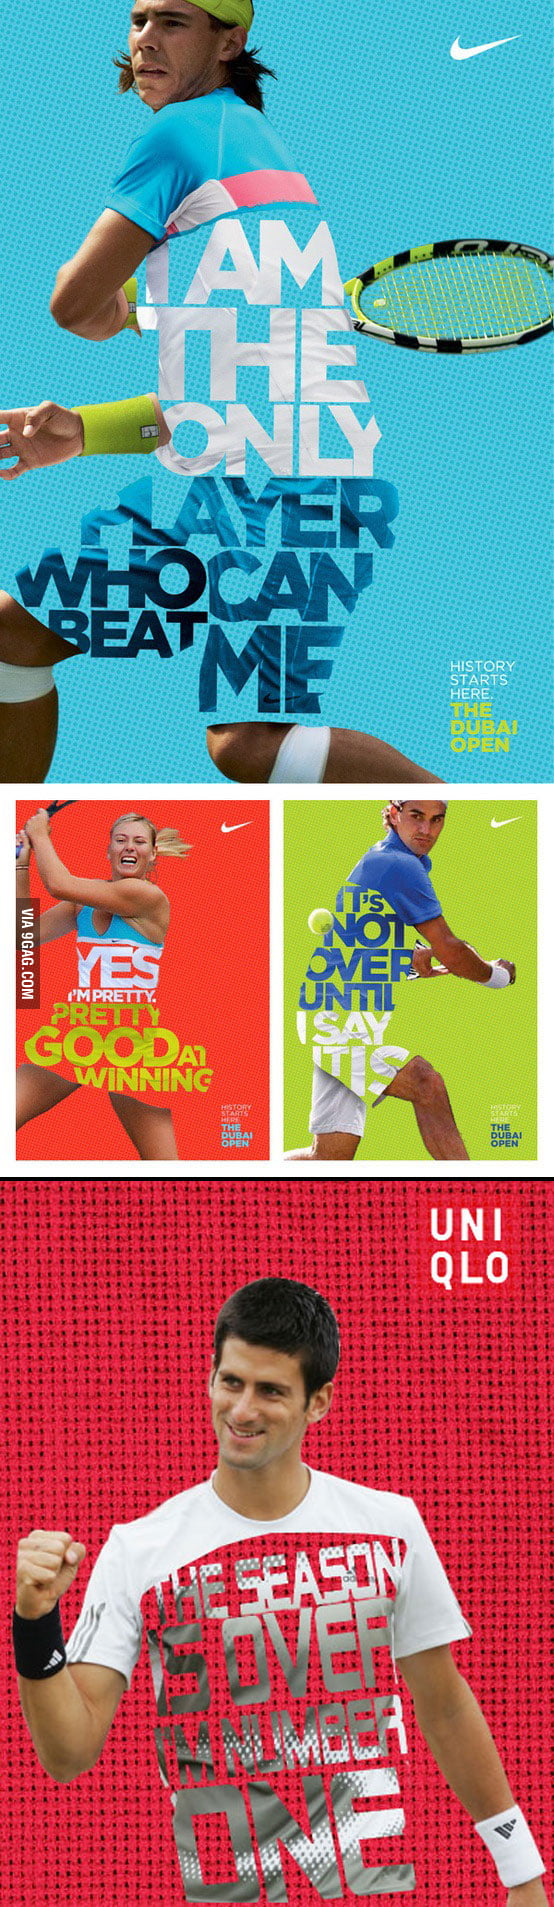 Epic Nike Tennis Posters with NOVAK